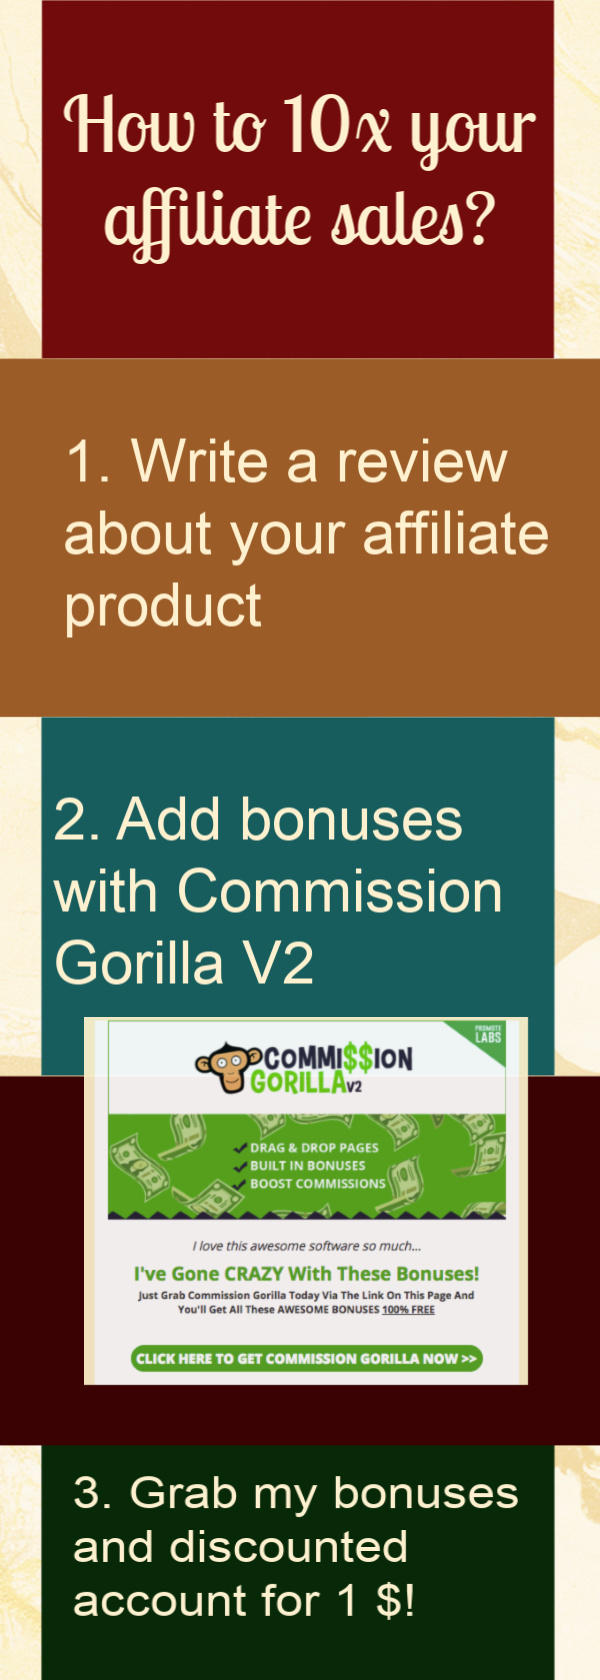 How to 10x your affiliate sales with Commission Gorilla V2